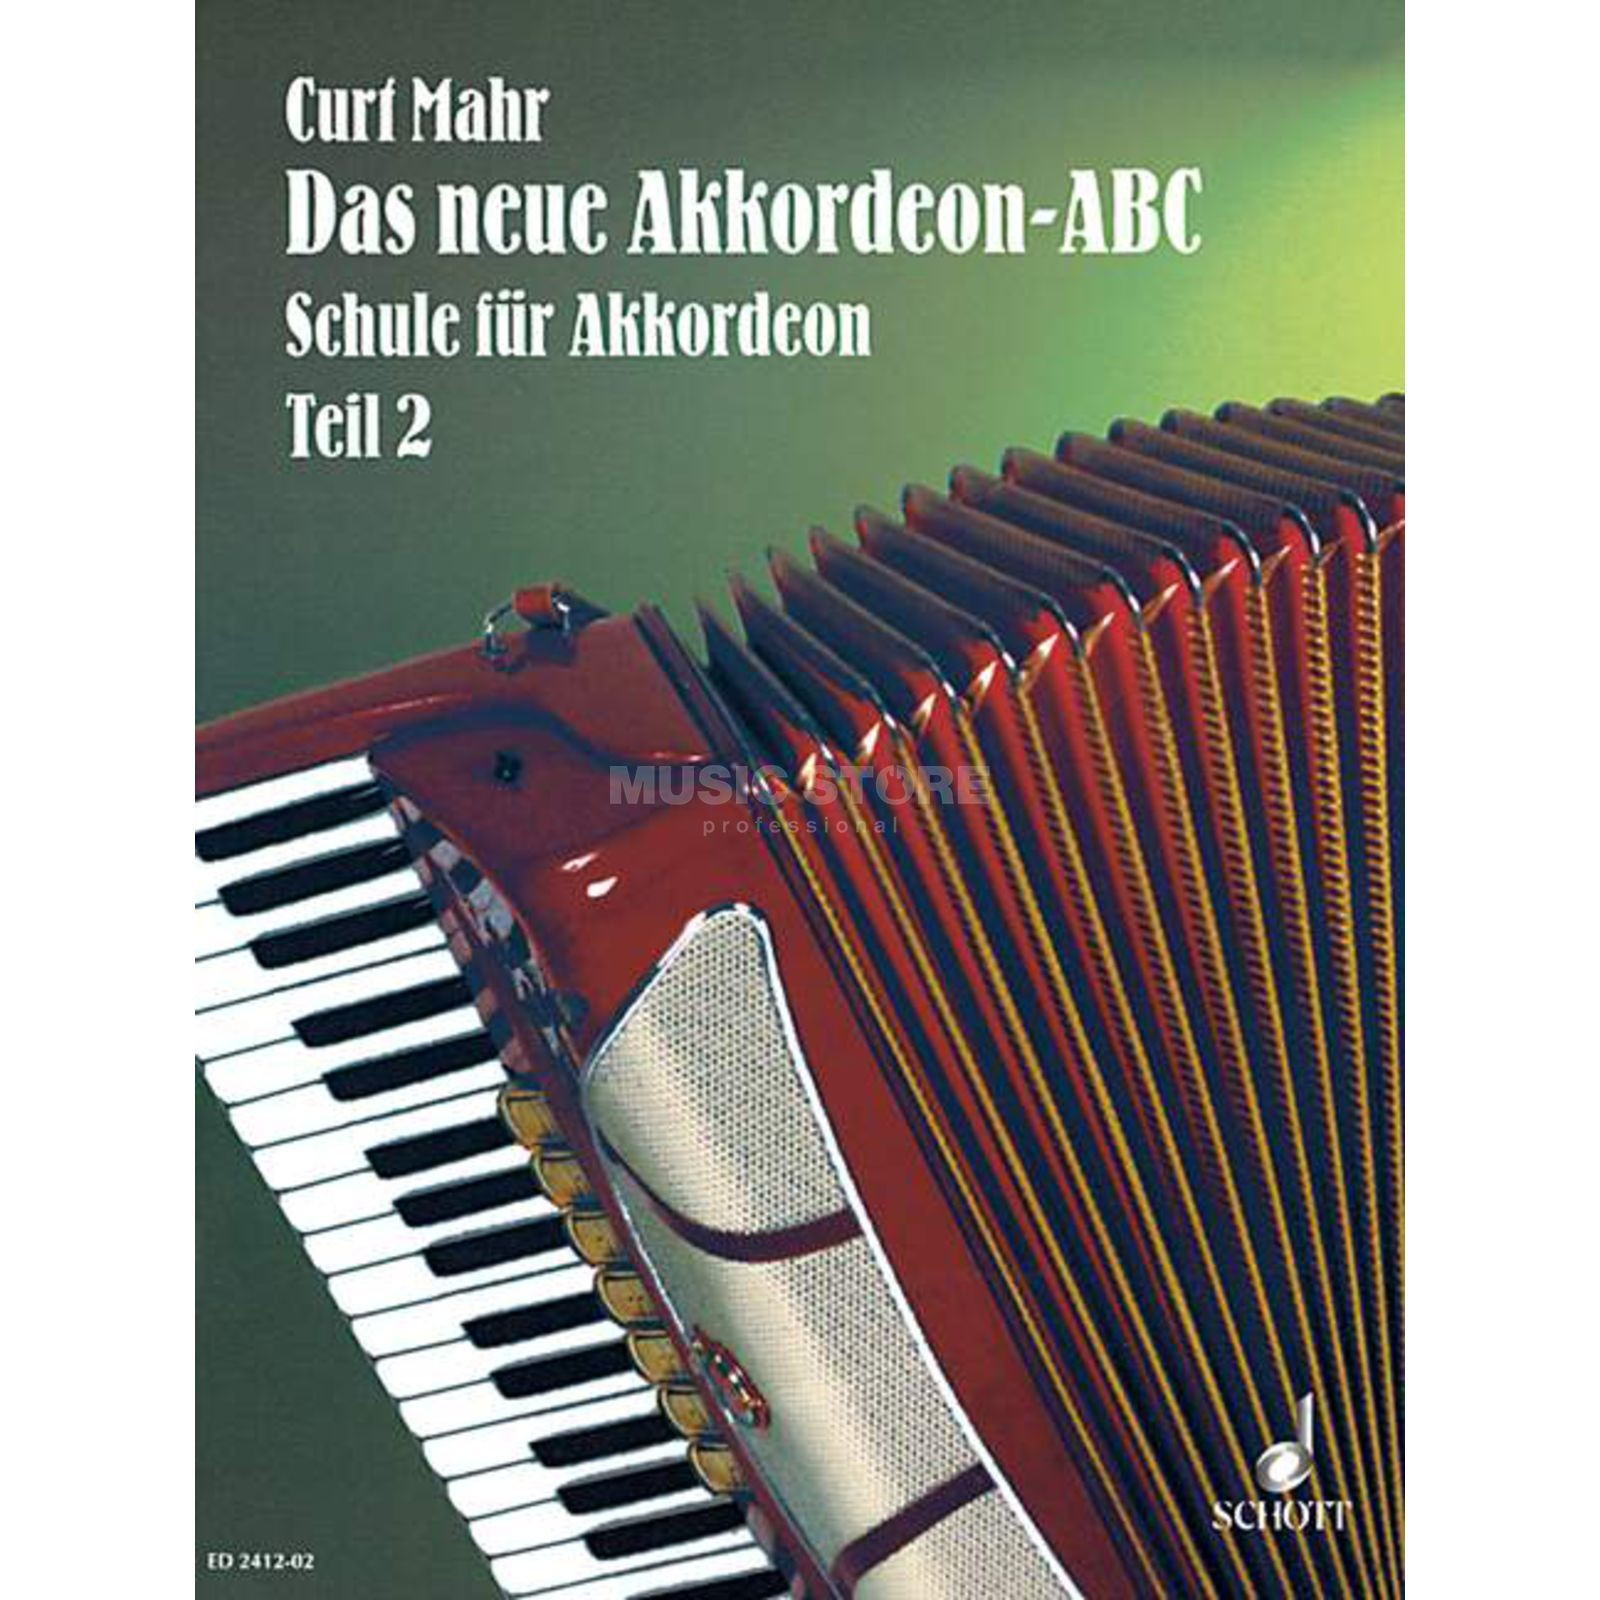 Schott Music Das neue Akkordeon-ABC, Band 2 Curt Mahr Product Image